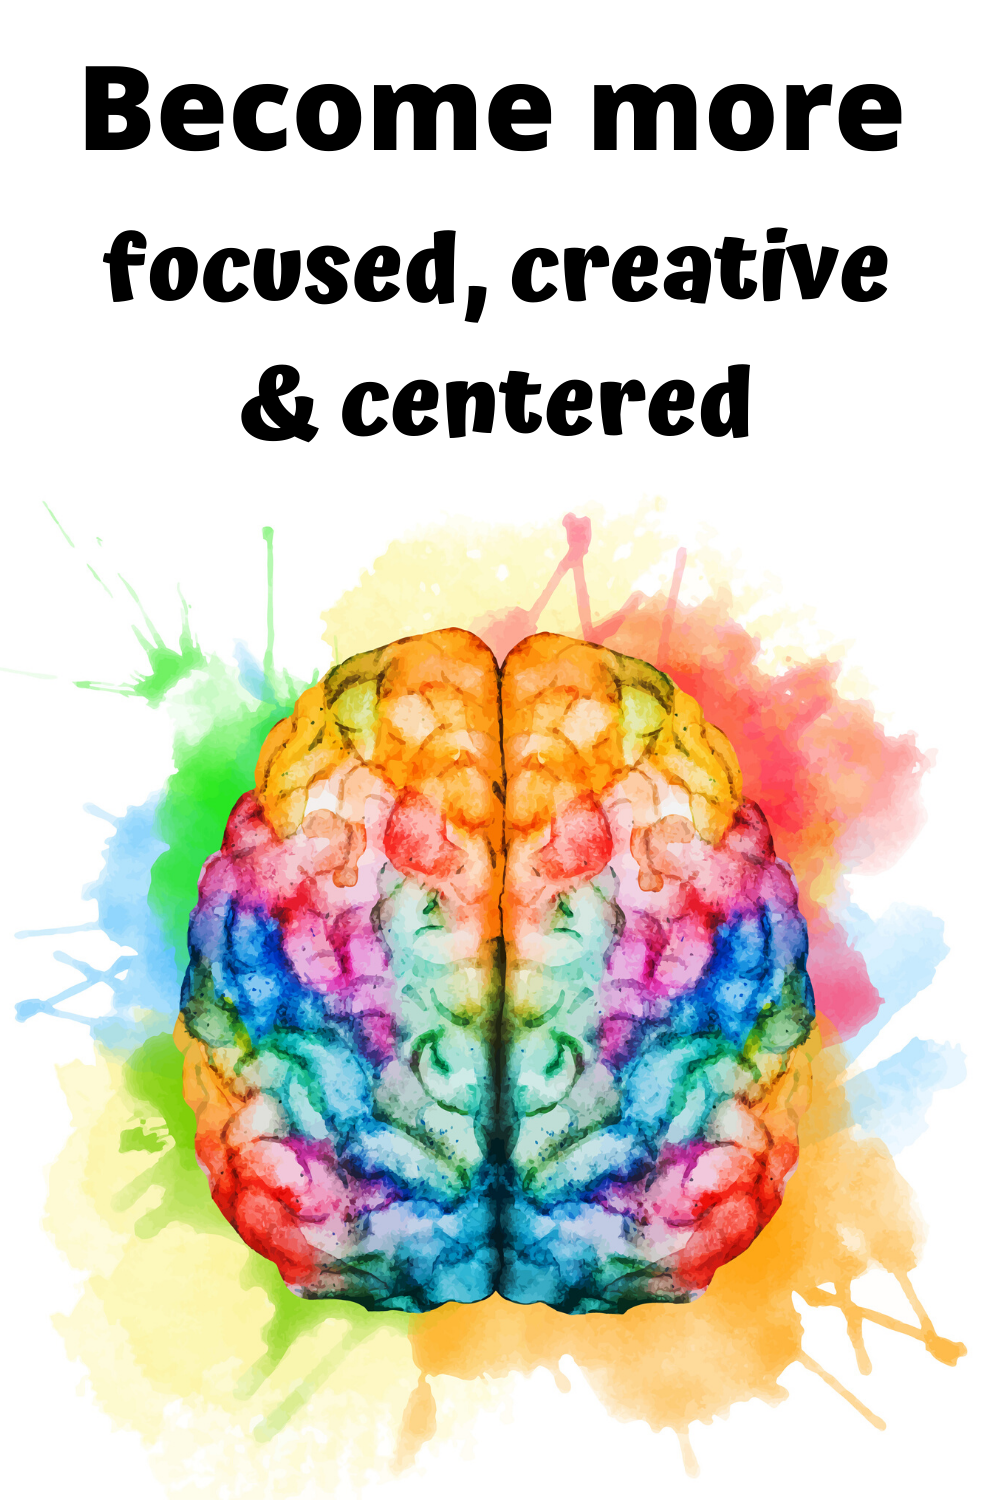 focused creative centered raikov effect